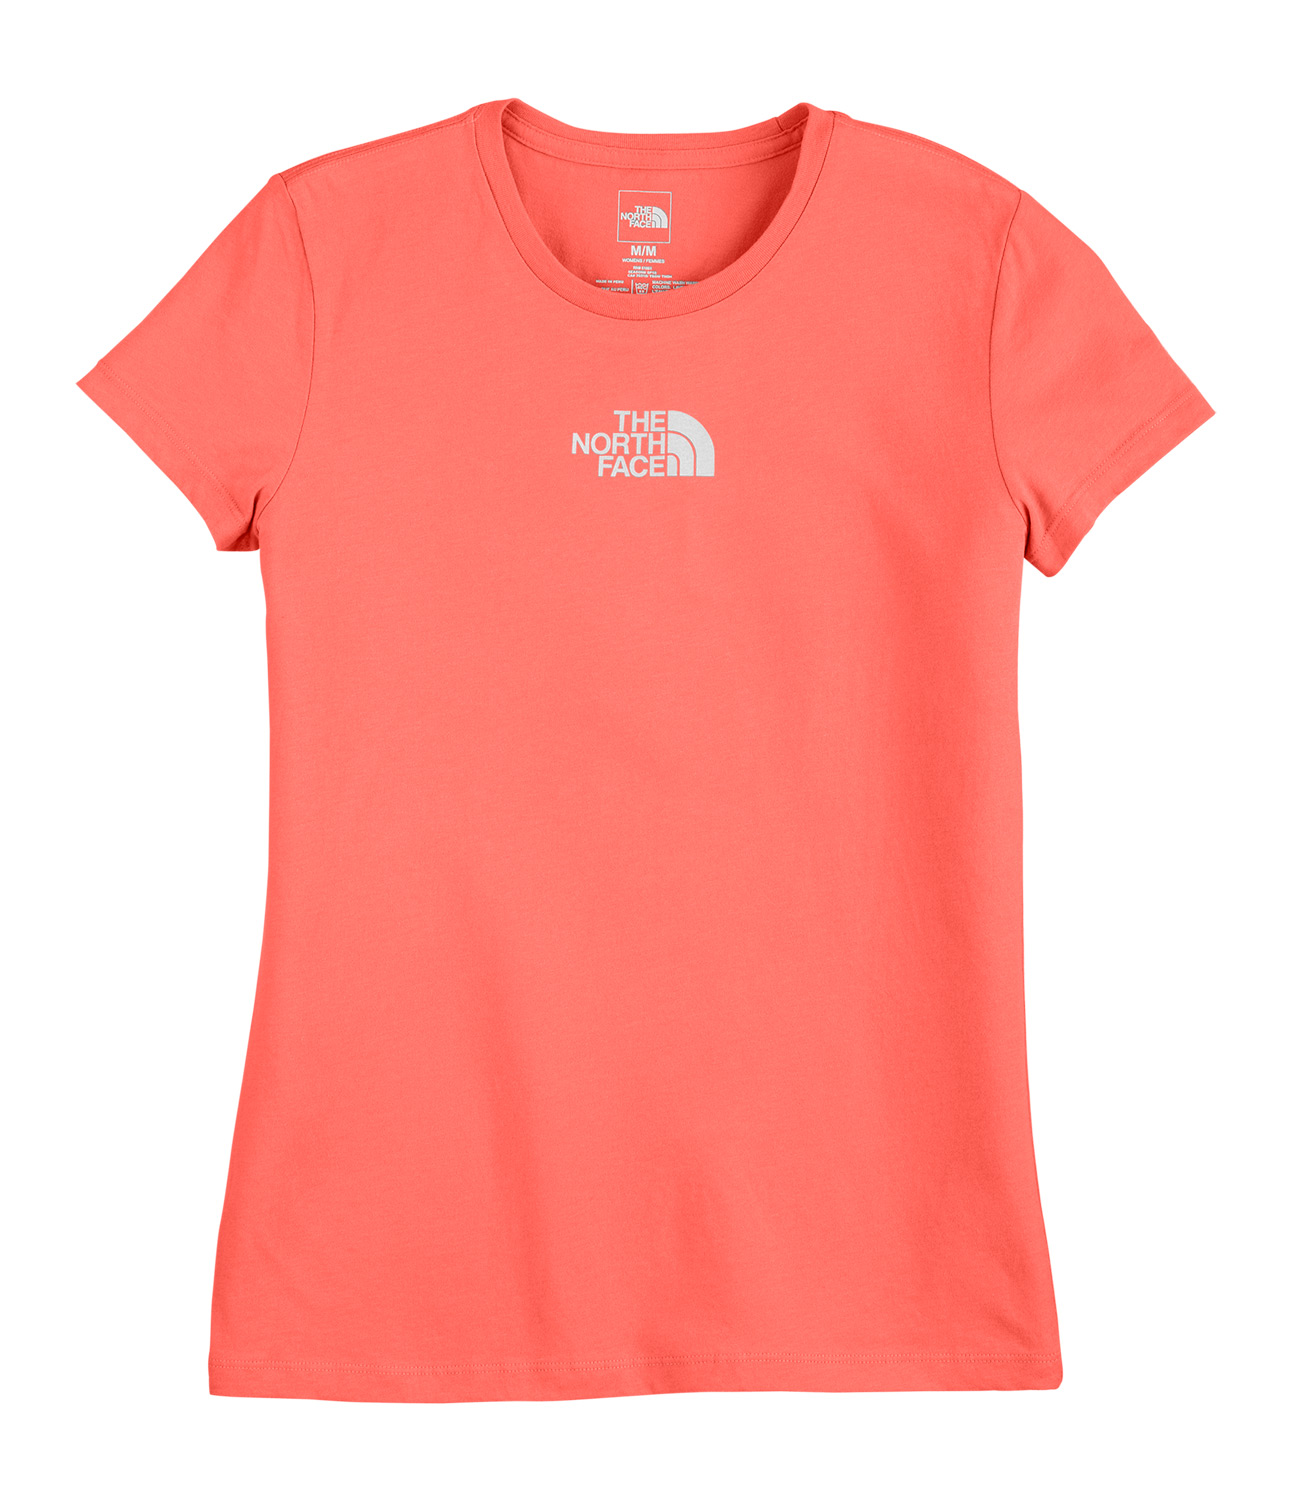 Key Features of The The North Face Micro Logo T-Shirt: Regular Fit Crew Neck Short Sleeve 100% cotton jersey fabric 1x1 rib at the collar Water-based graphic - $12.95